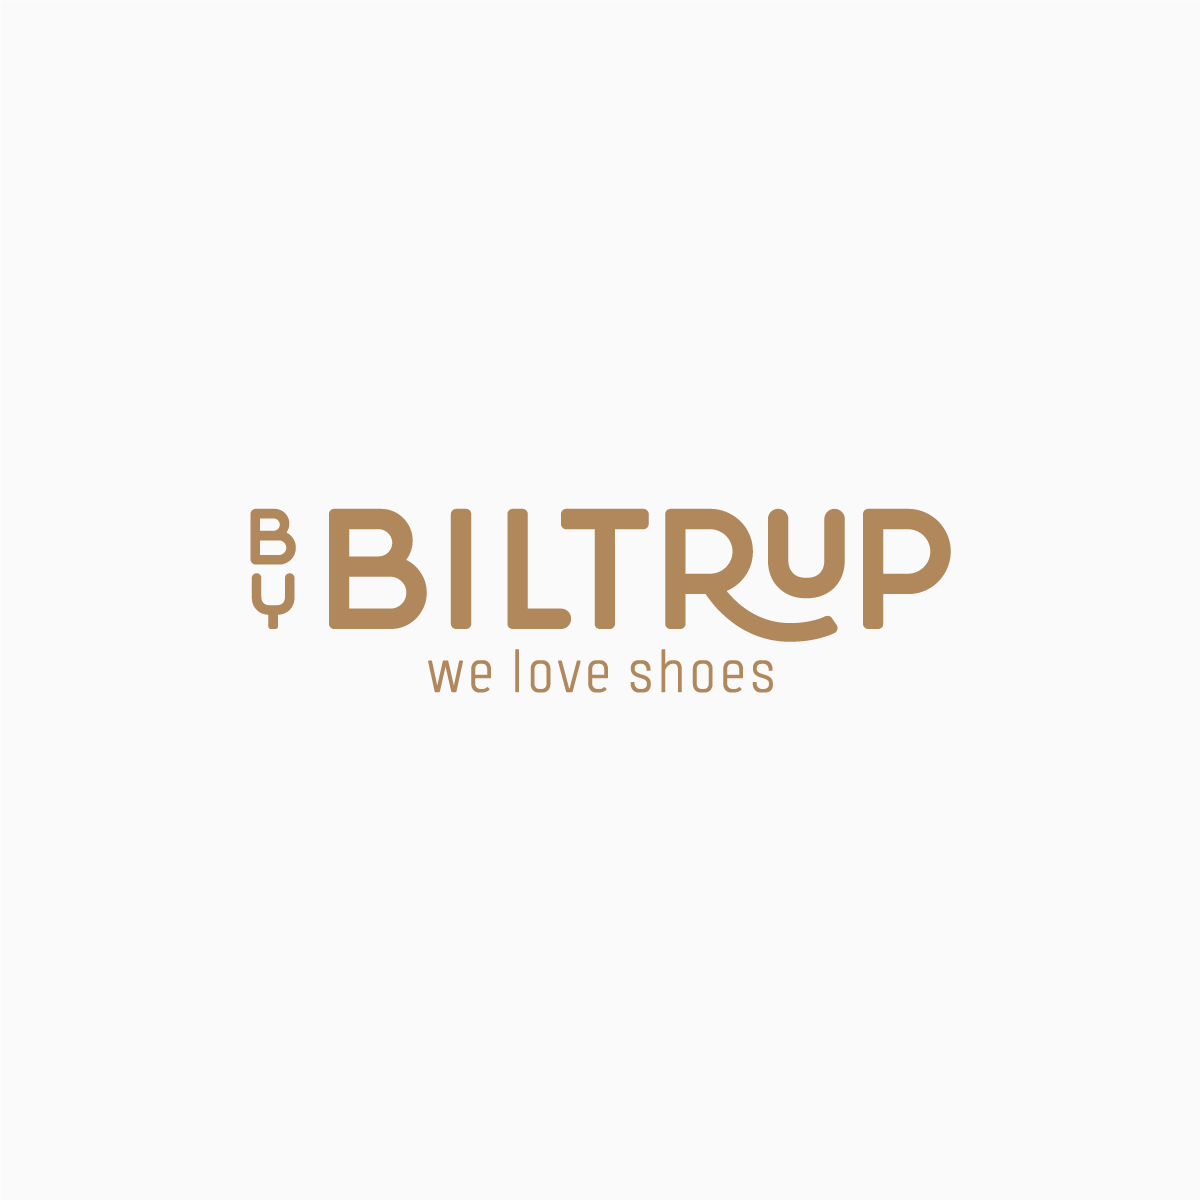 By Biltrup logo